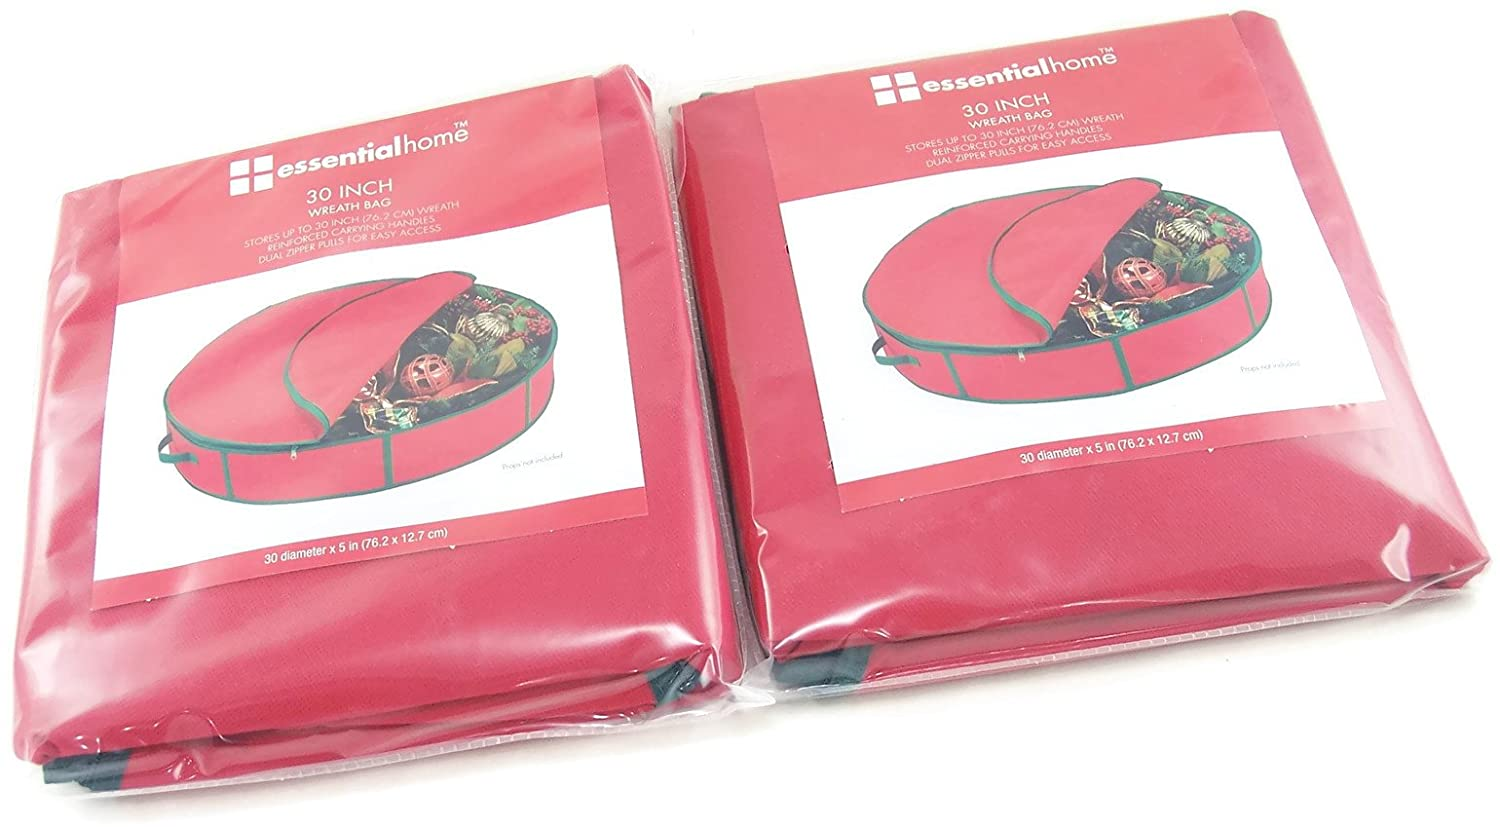 Essentialhome Wreath Storage Bags 30 Inches in Diameter X 5 Inches Tall with a Double Zipper Closure and Carrying Handle- Red (2 Pack/bags)